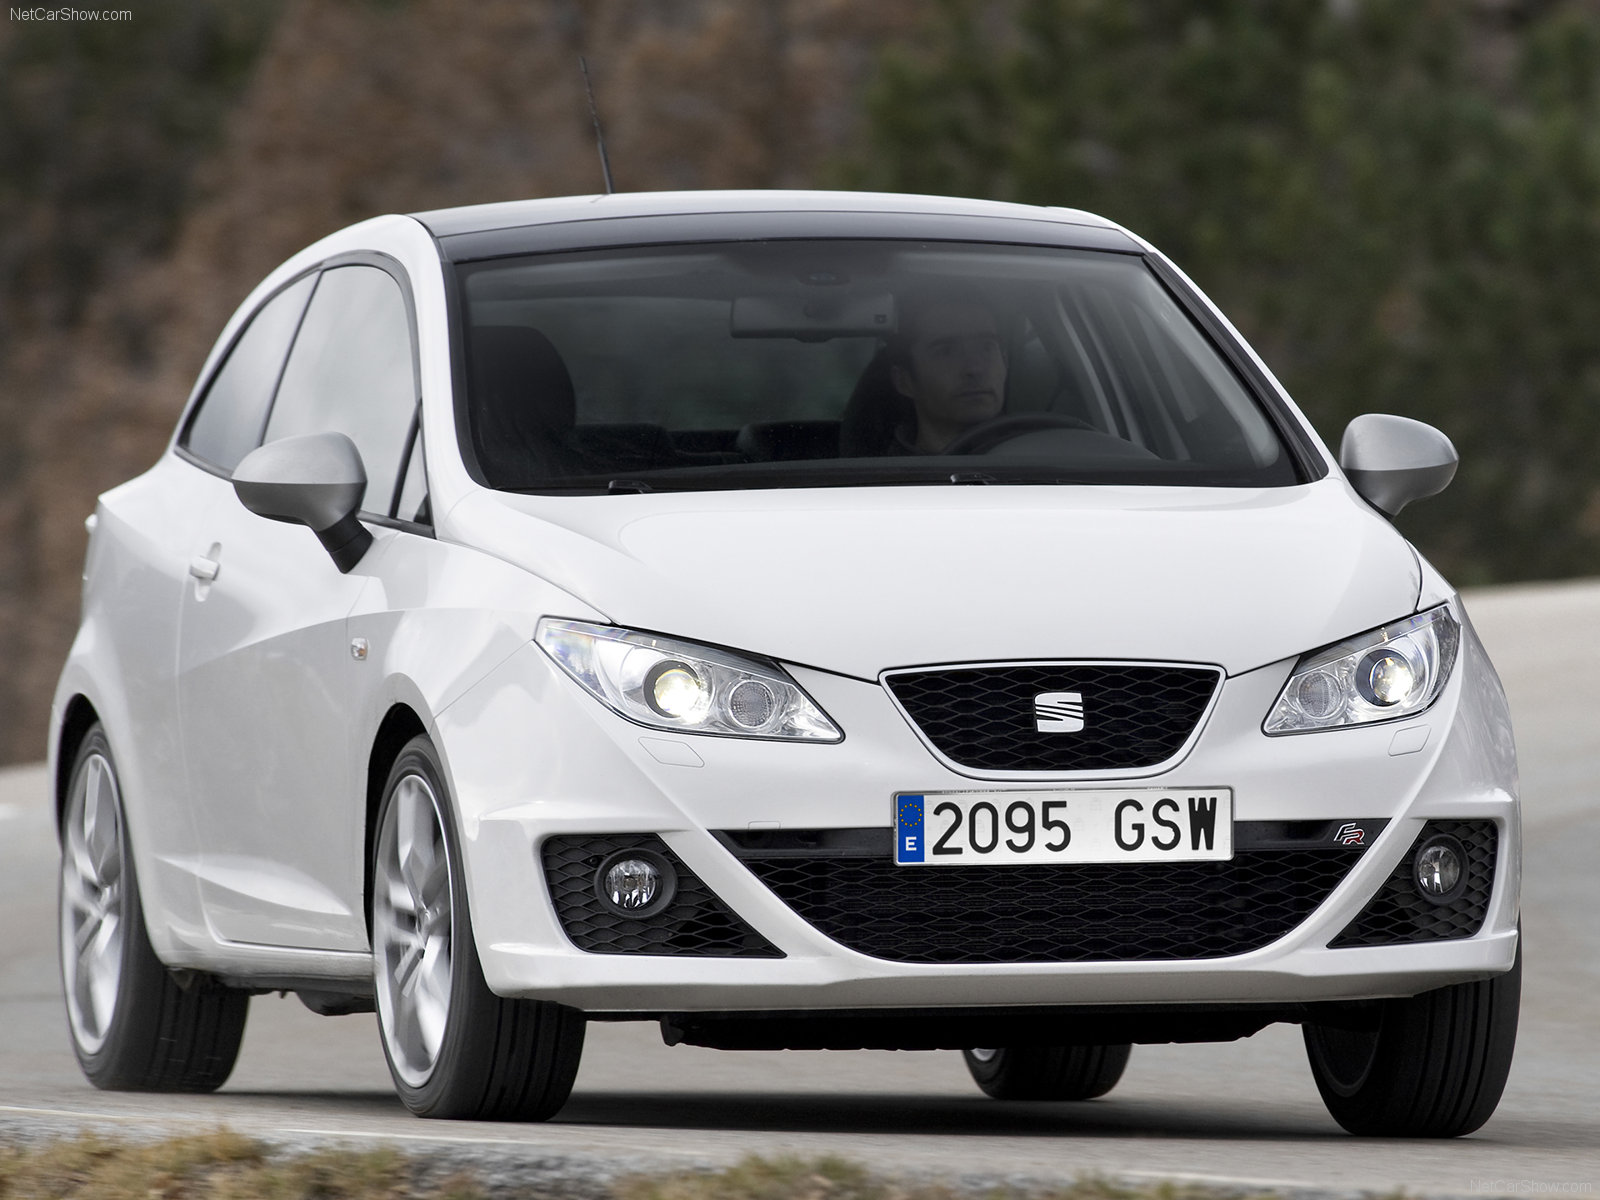 seat ibiza fr tdi picture 71150 seat photo gallery. Black Bedroom Furniture Sets. Home Design Ideas